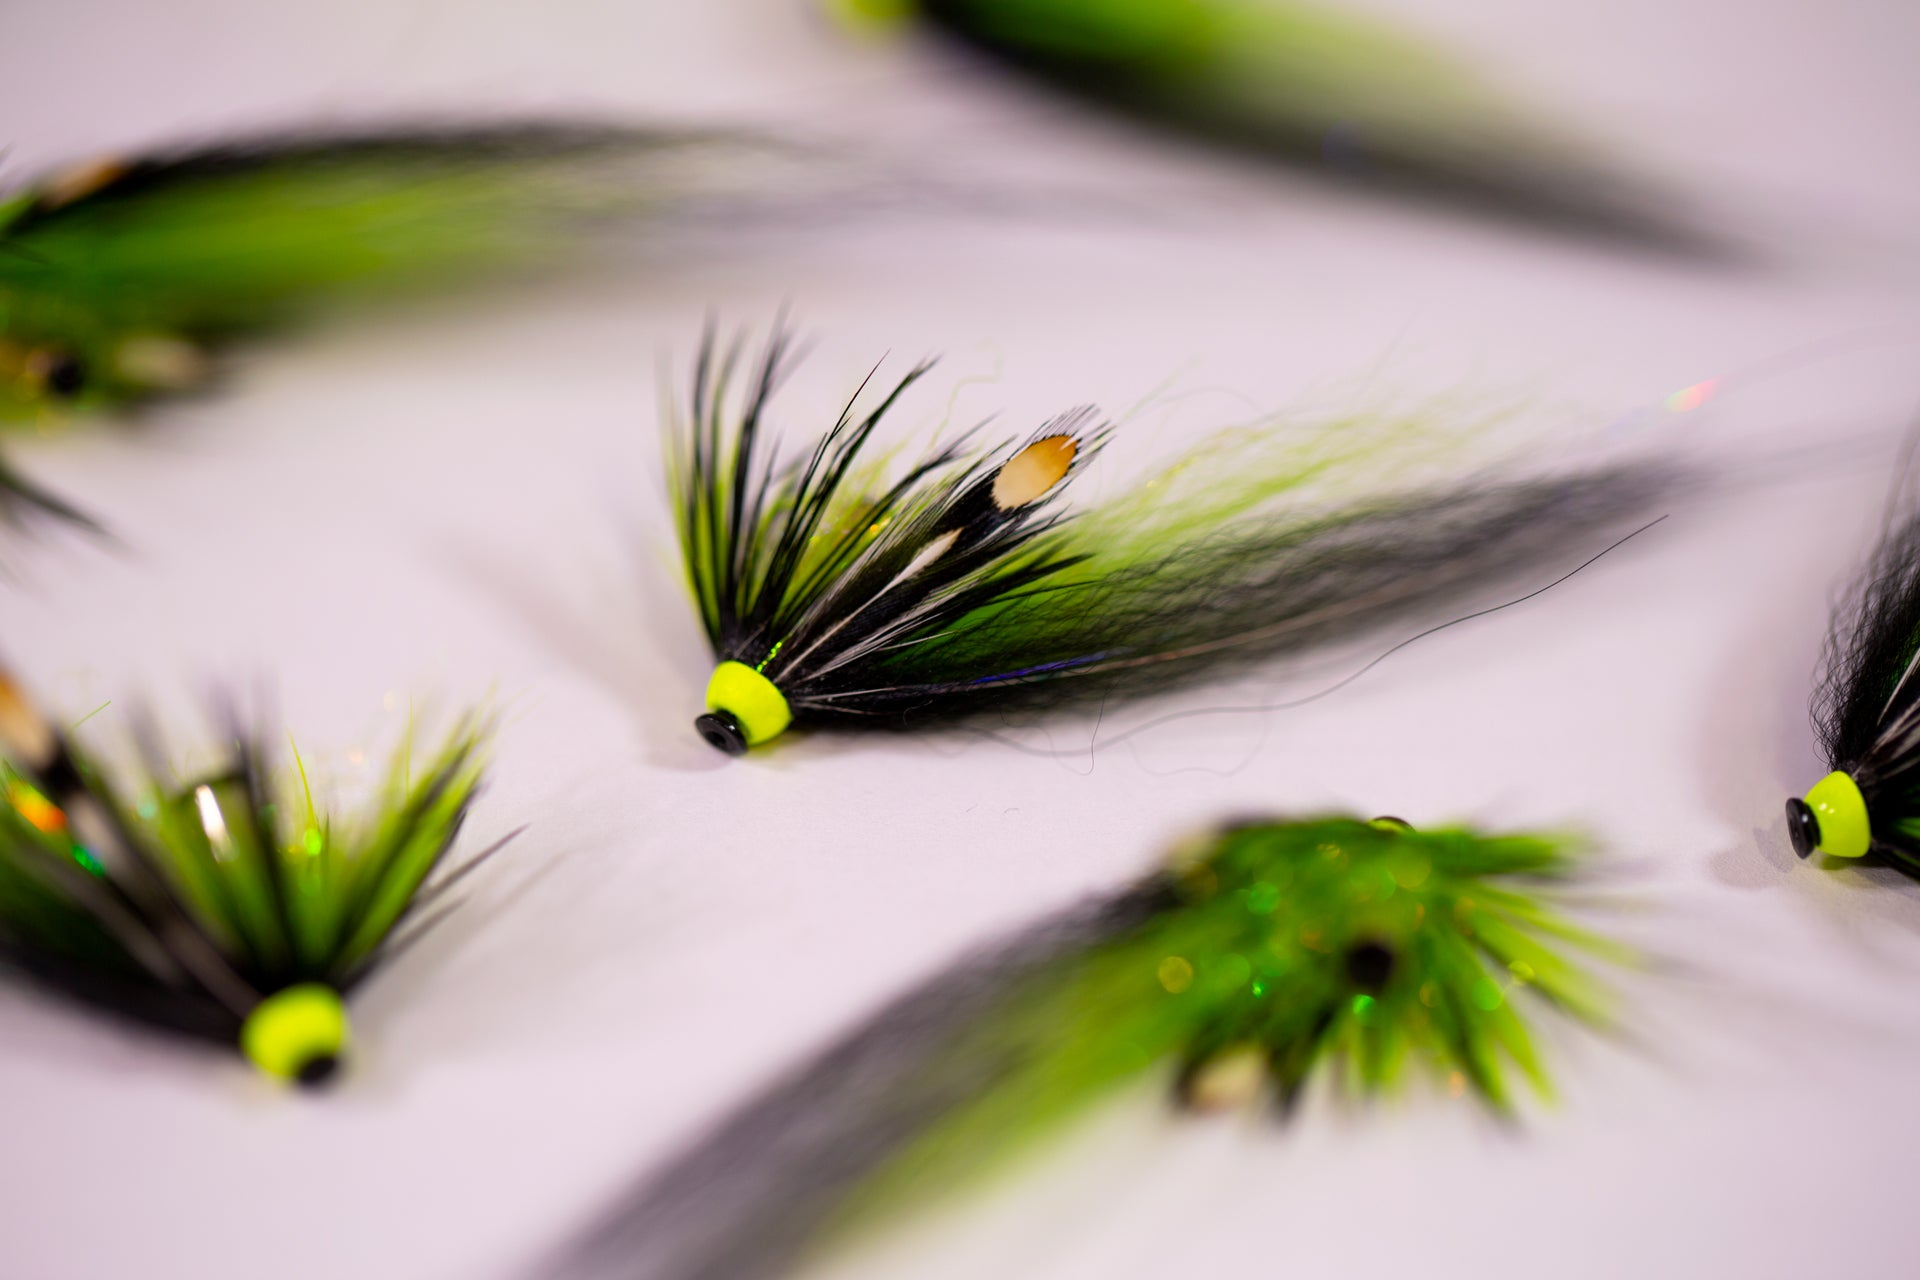 Tying a Black & Green tube fly